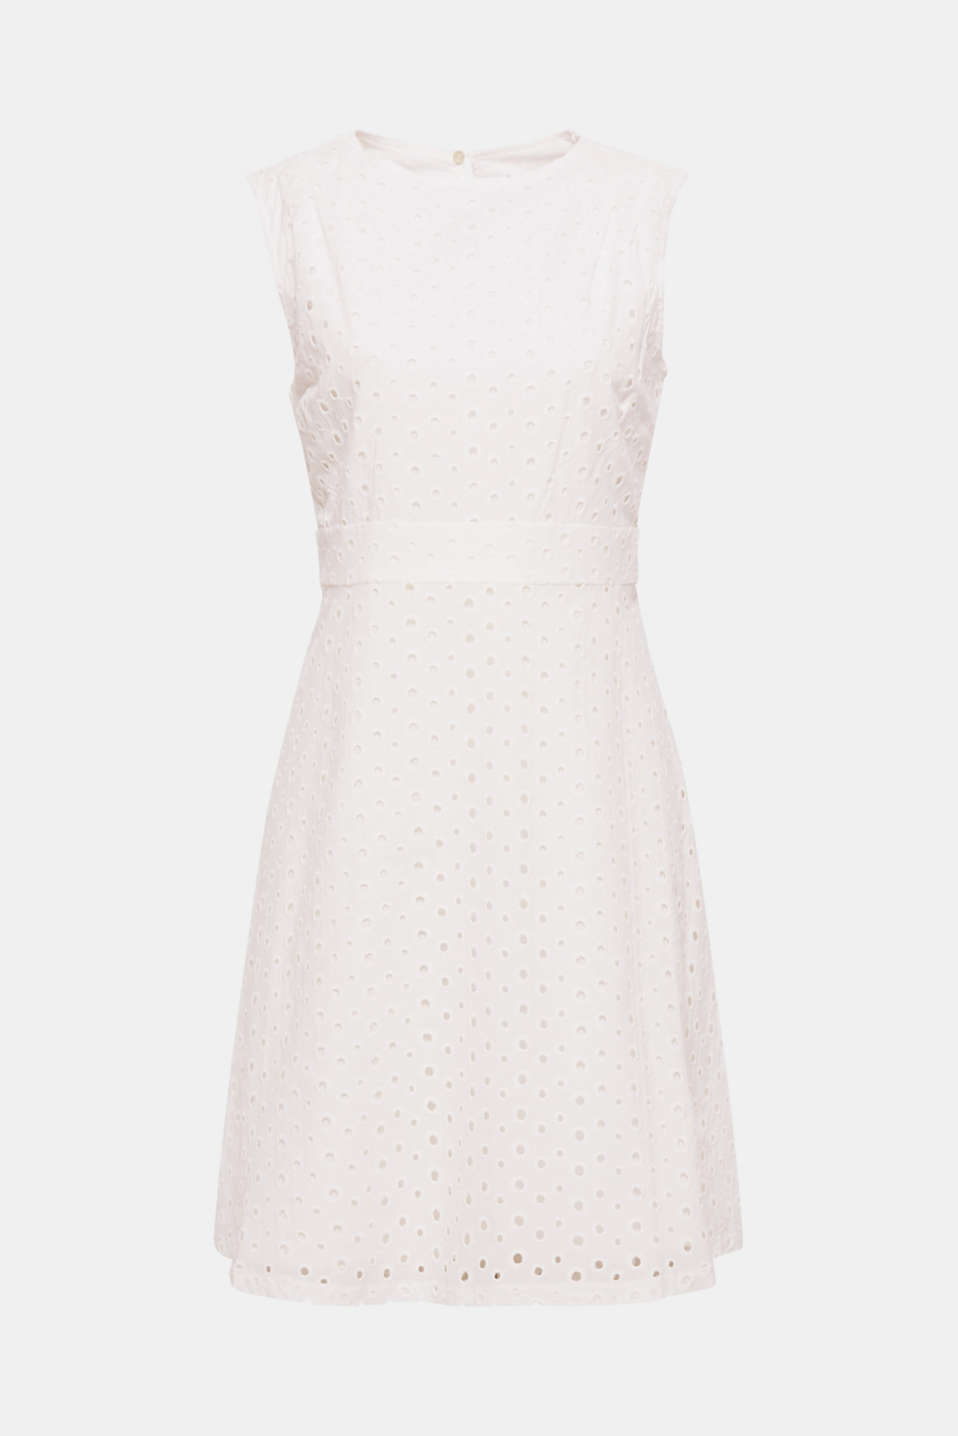 Our fave for feminine spring and summer looks: this flared cotton dress featuring exquisite broderie anglaise.